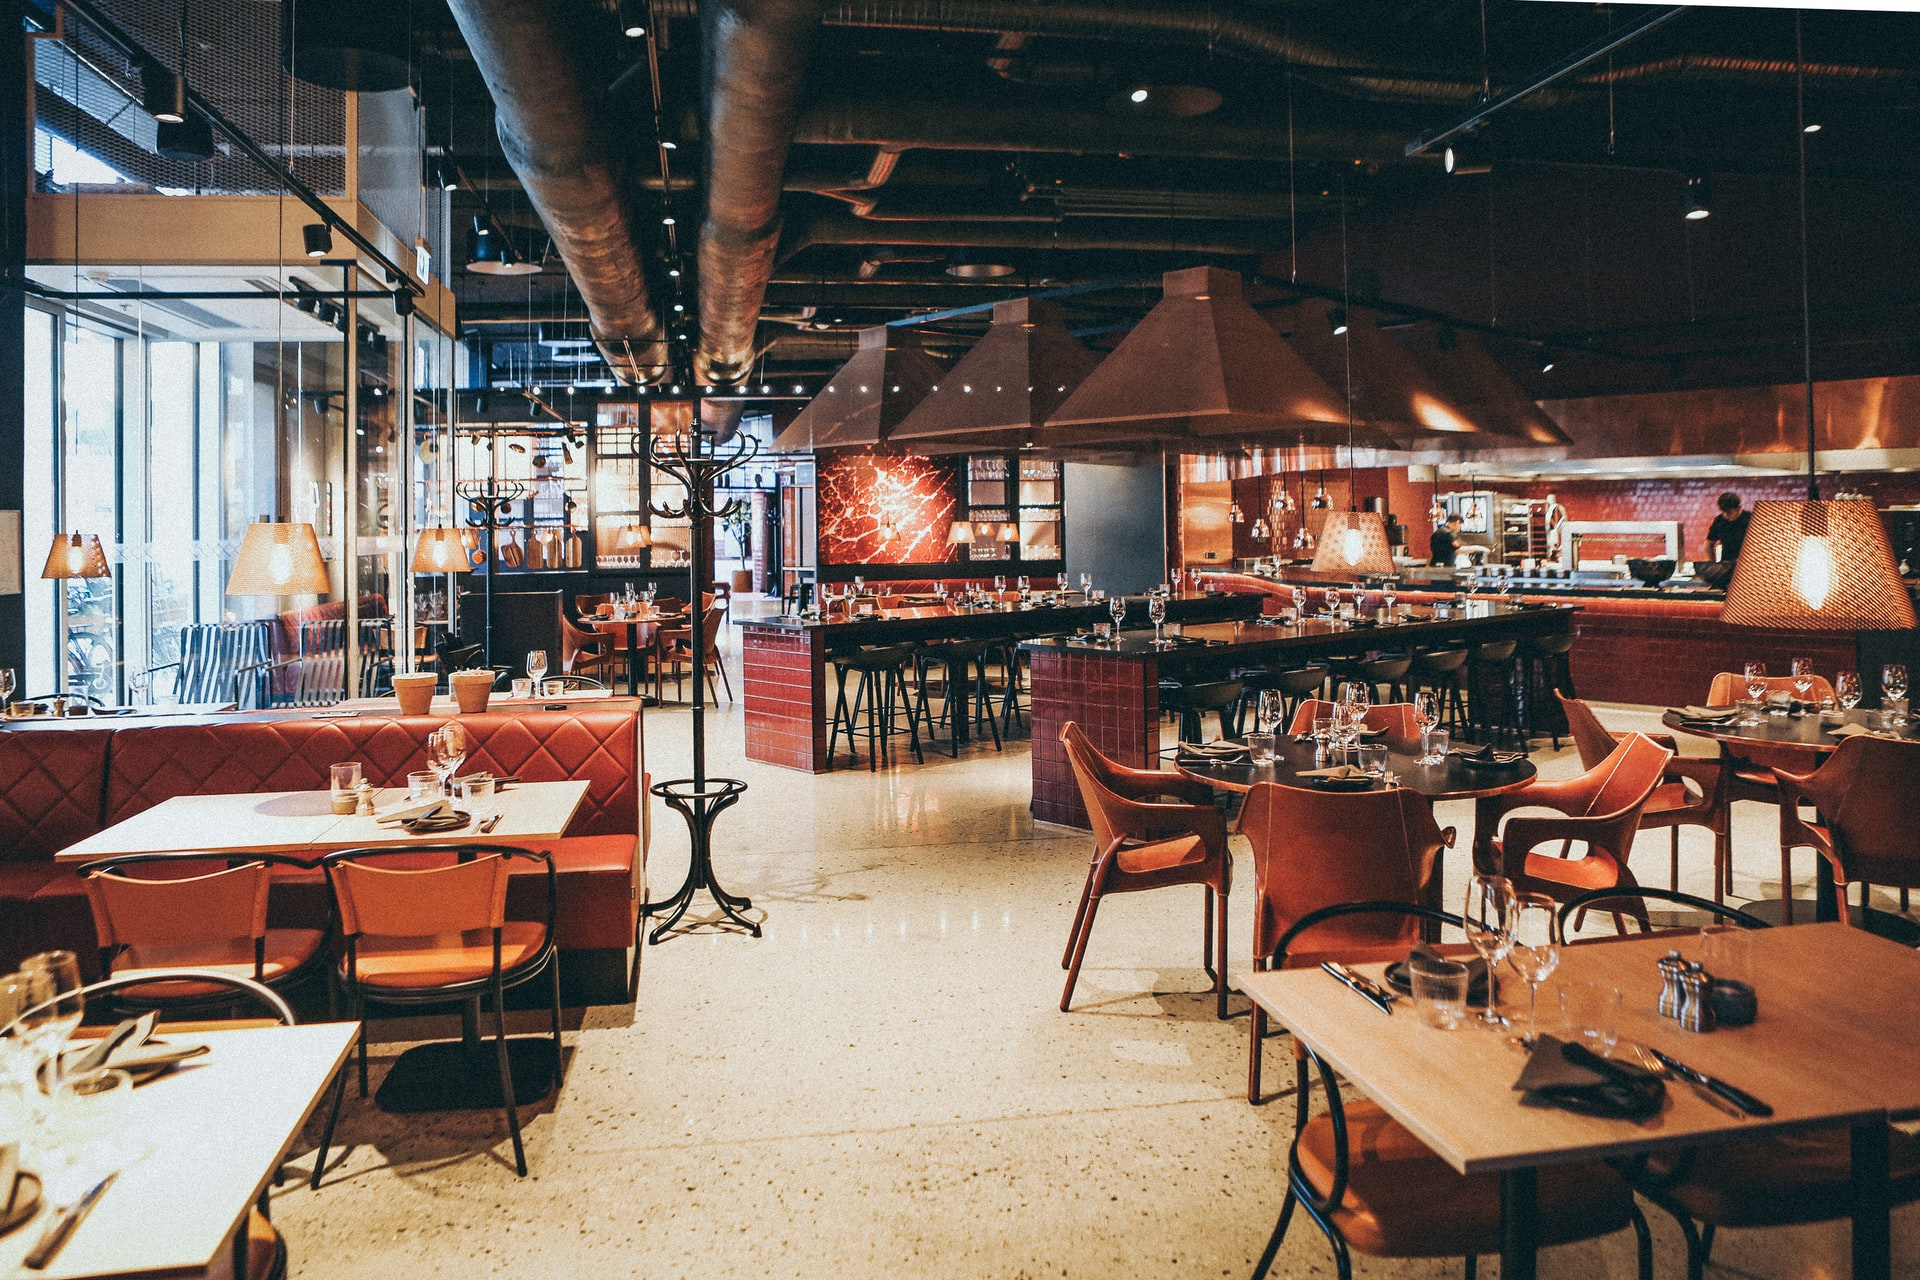 Improve Your Restaurant Dining Experience with a Proper Lighting